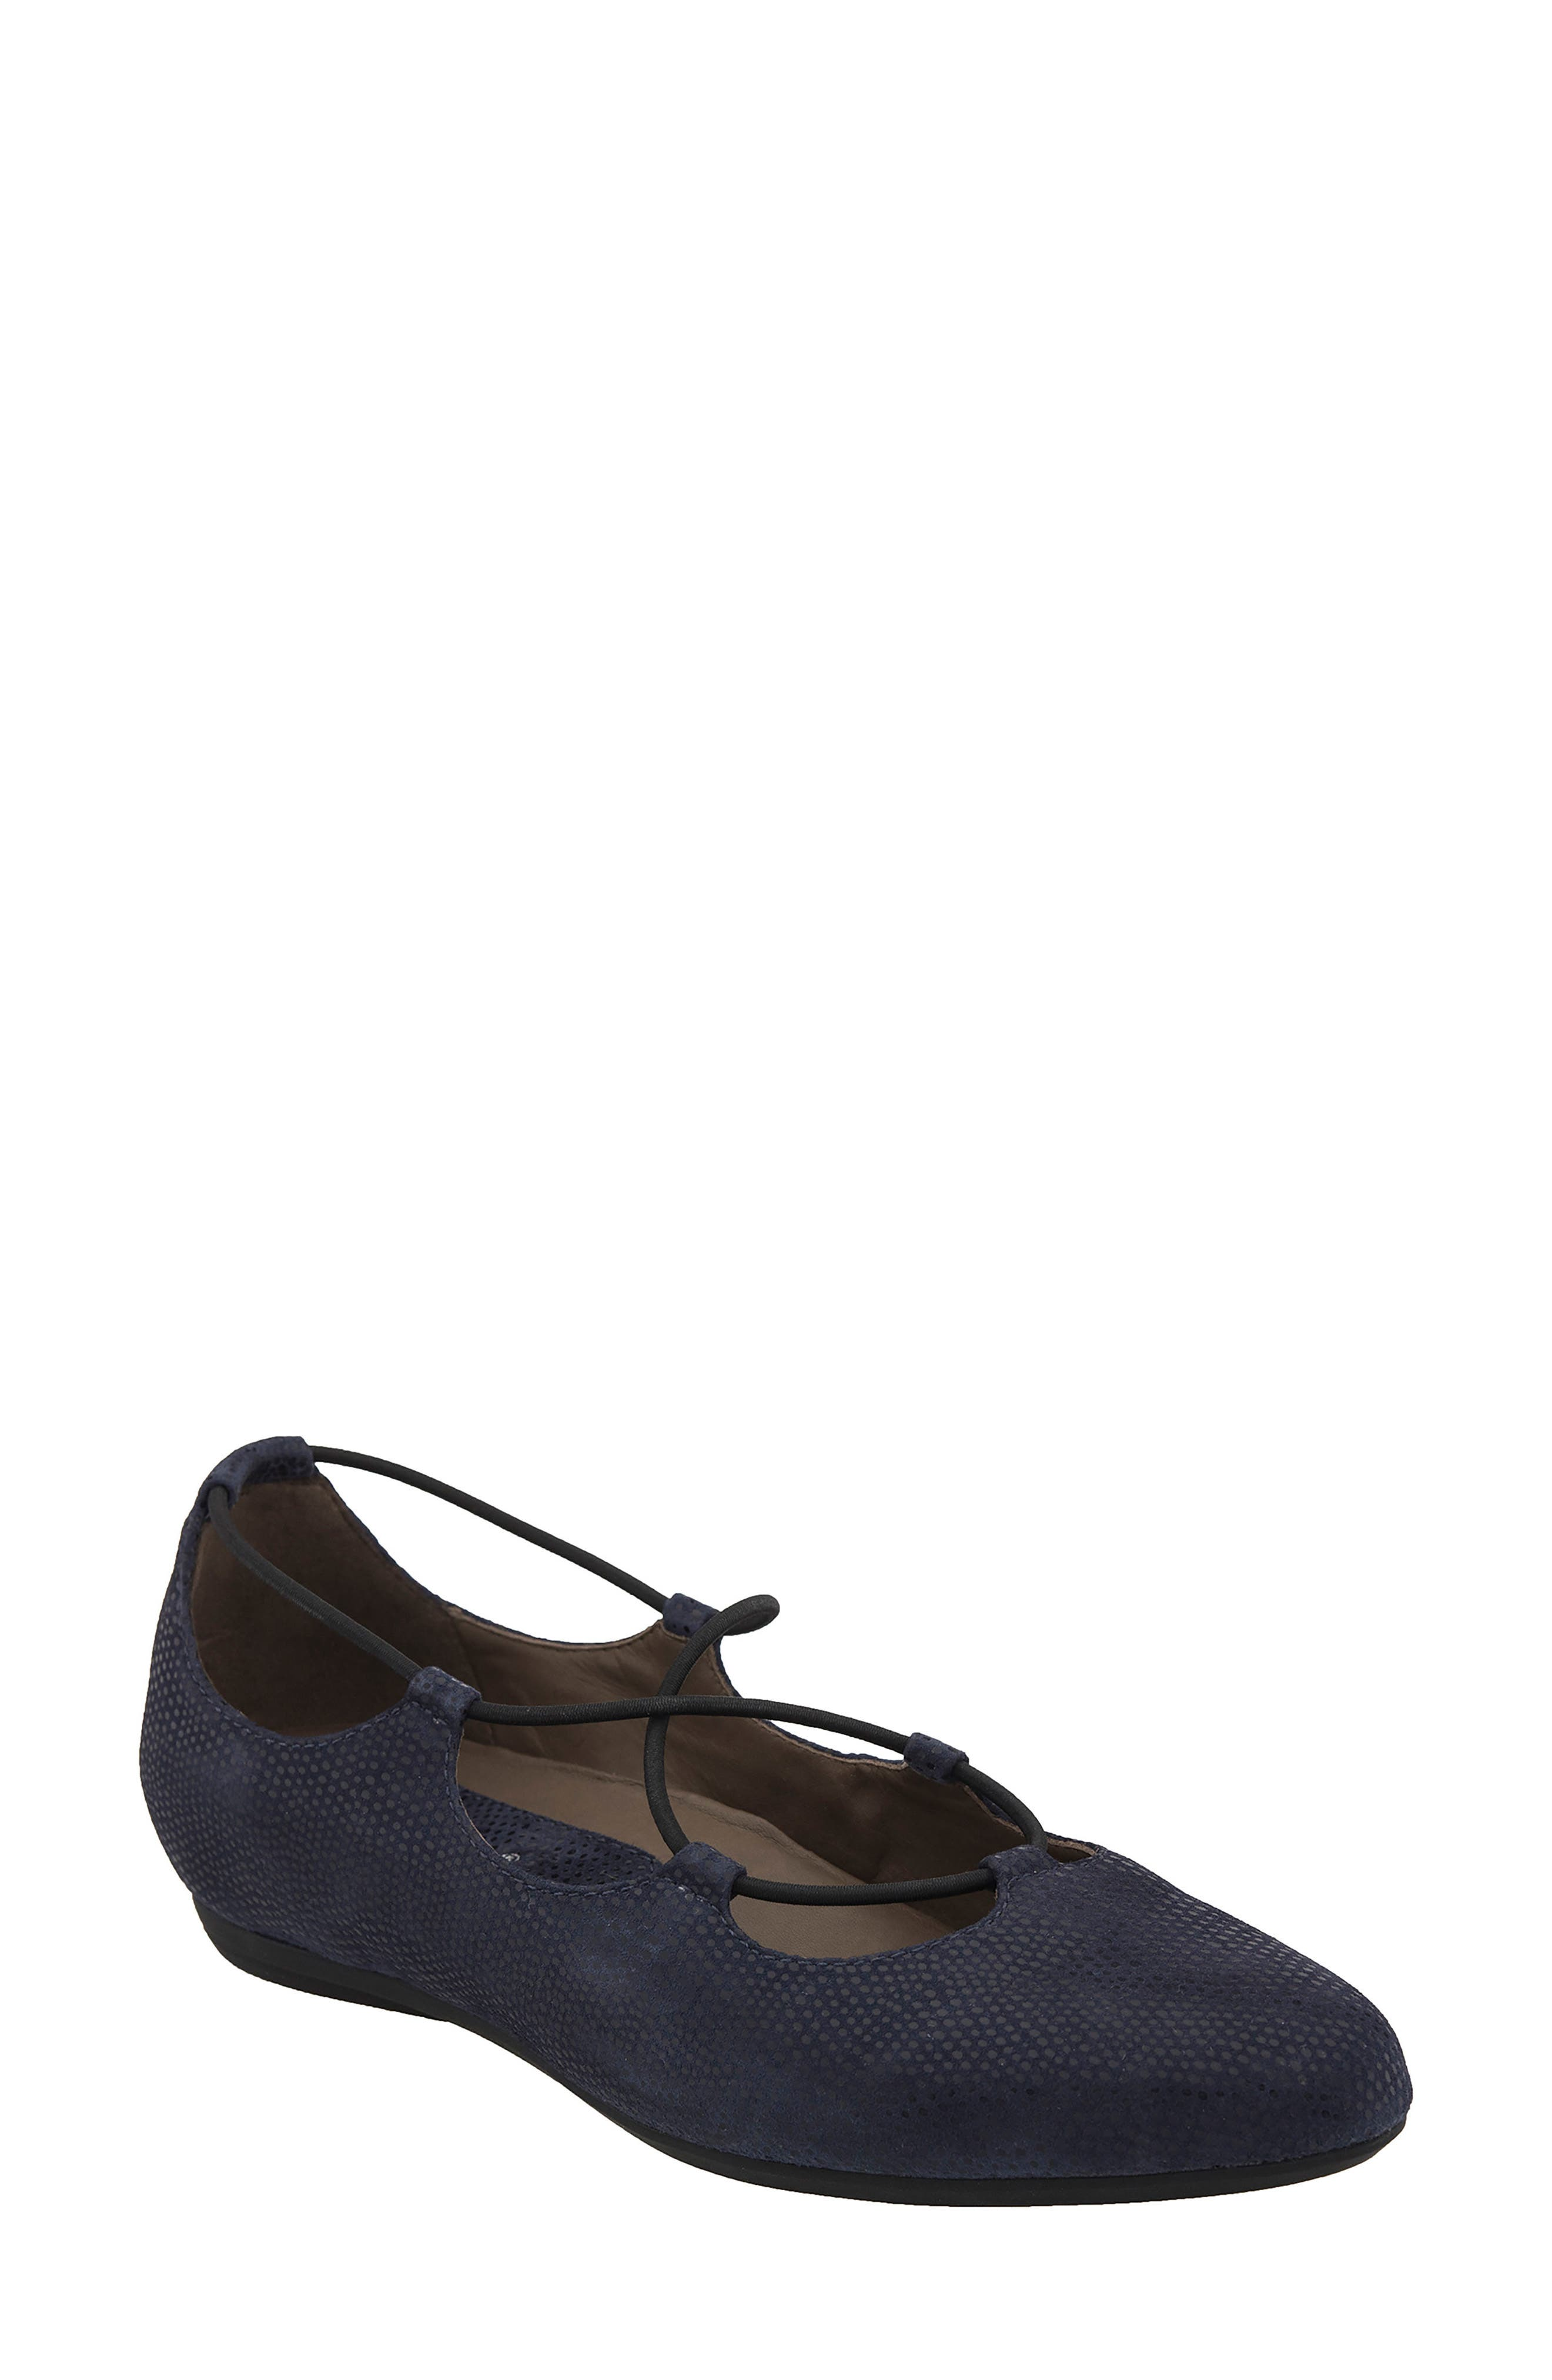 'Essen' Ghillie Flat,                         Main,                         color, Navy Printed Suede